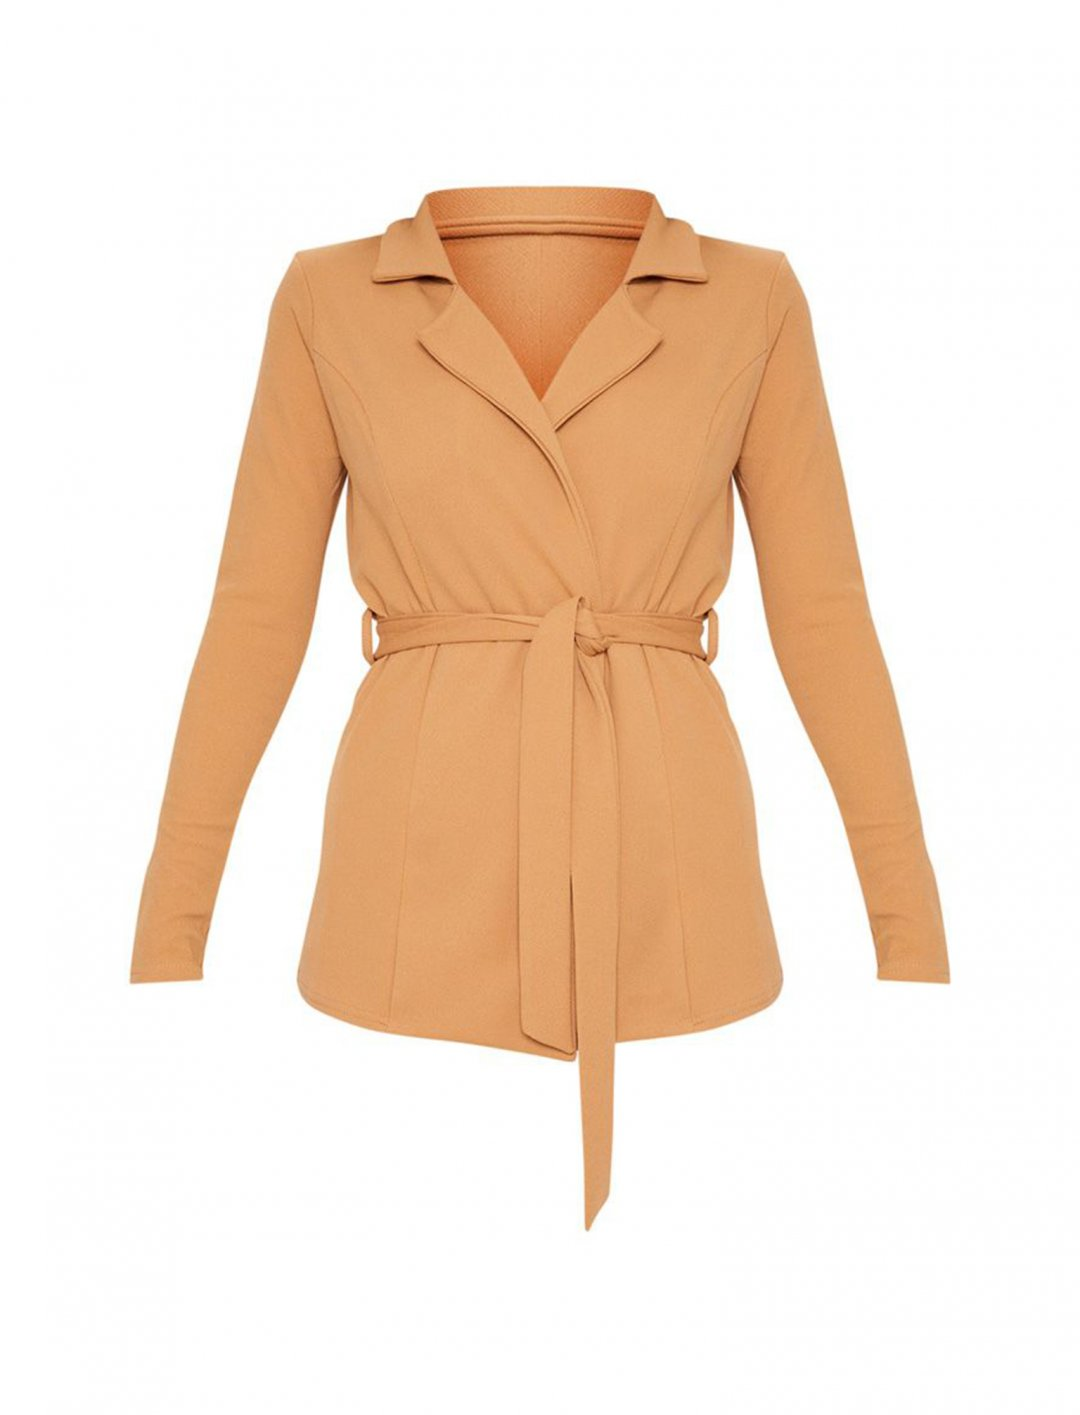 Yasmin's Belted Blazer Clothing Pretty Little Thing